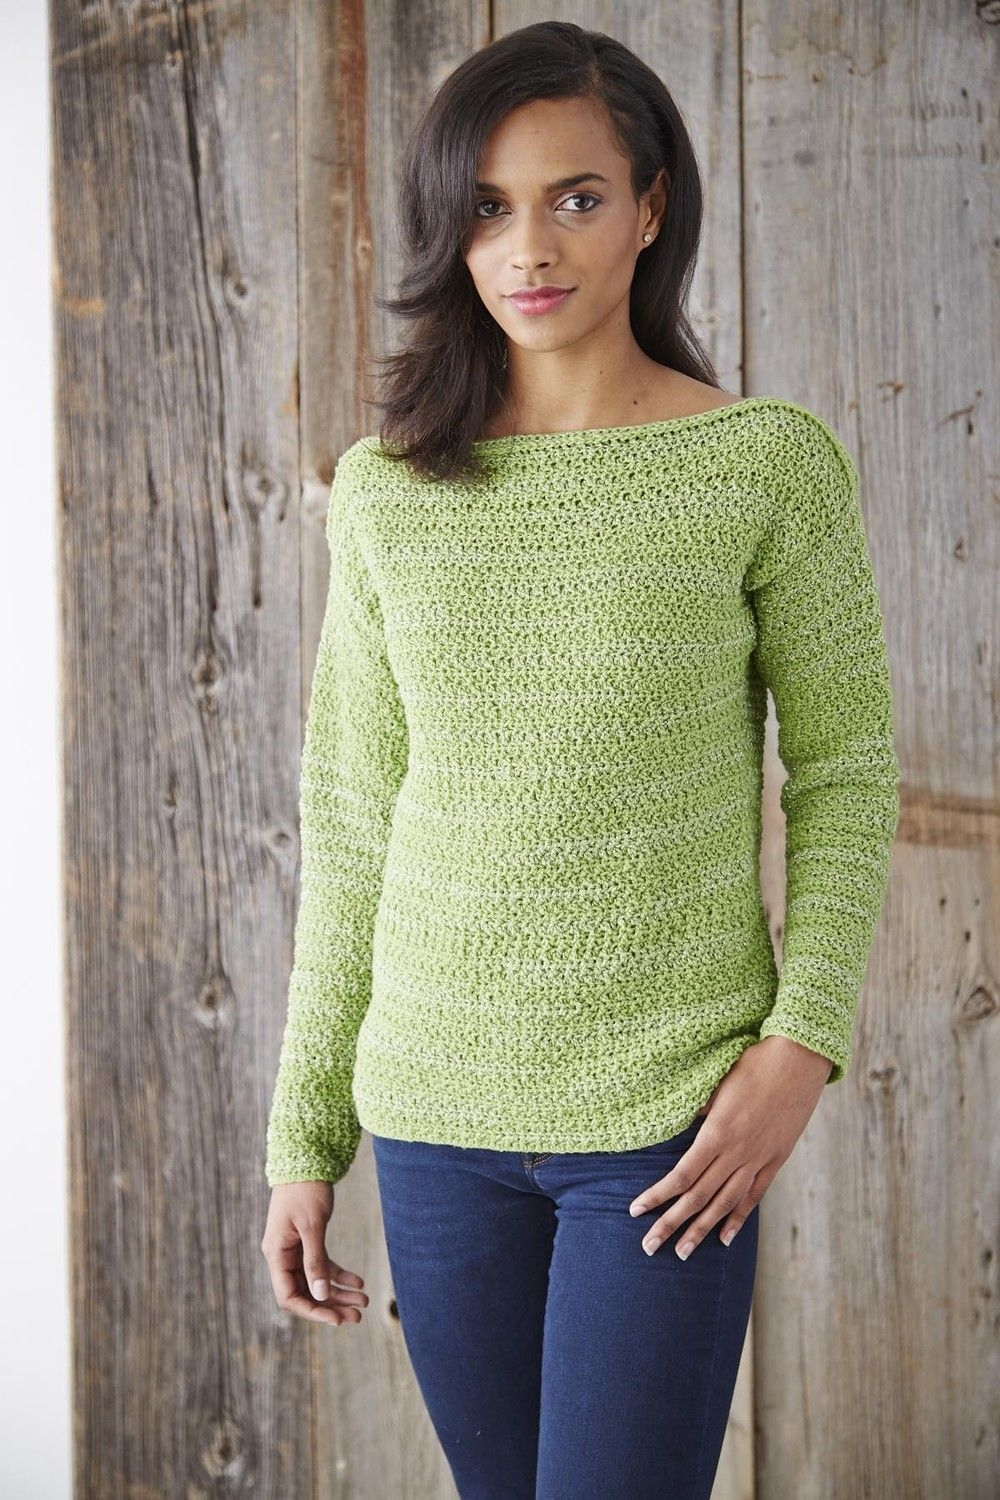 Boat Neck Pullover Sweater | Tejido, Ganchillo y Blusas